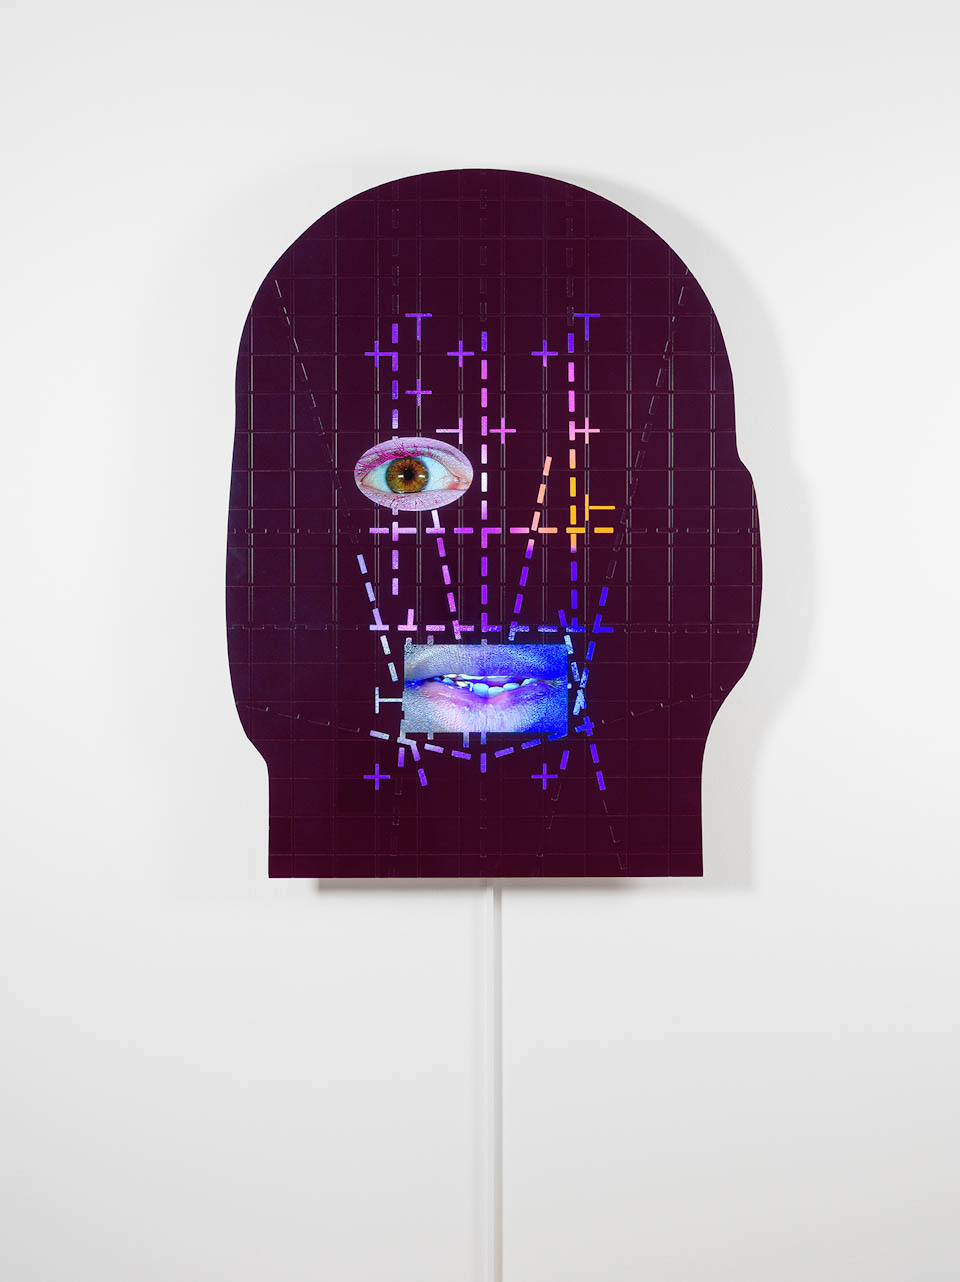 Tony_Oursler_2015_OUR_170_big.jpg